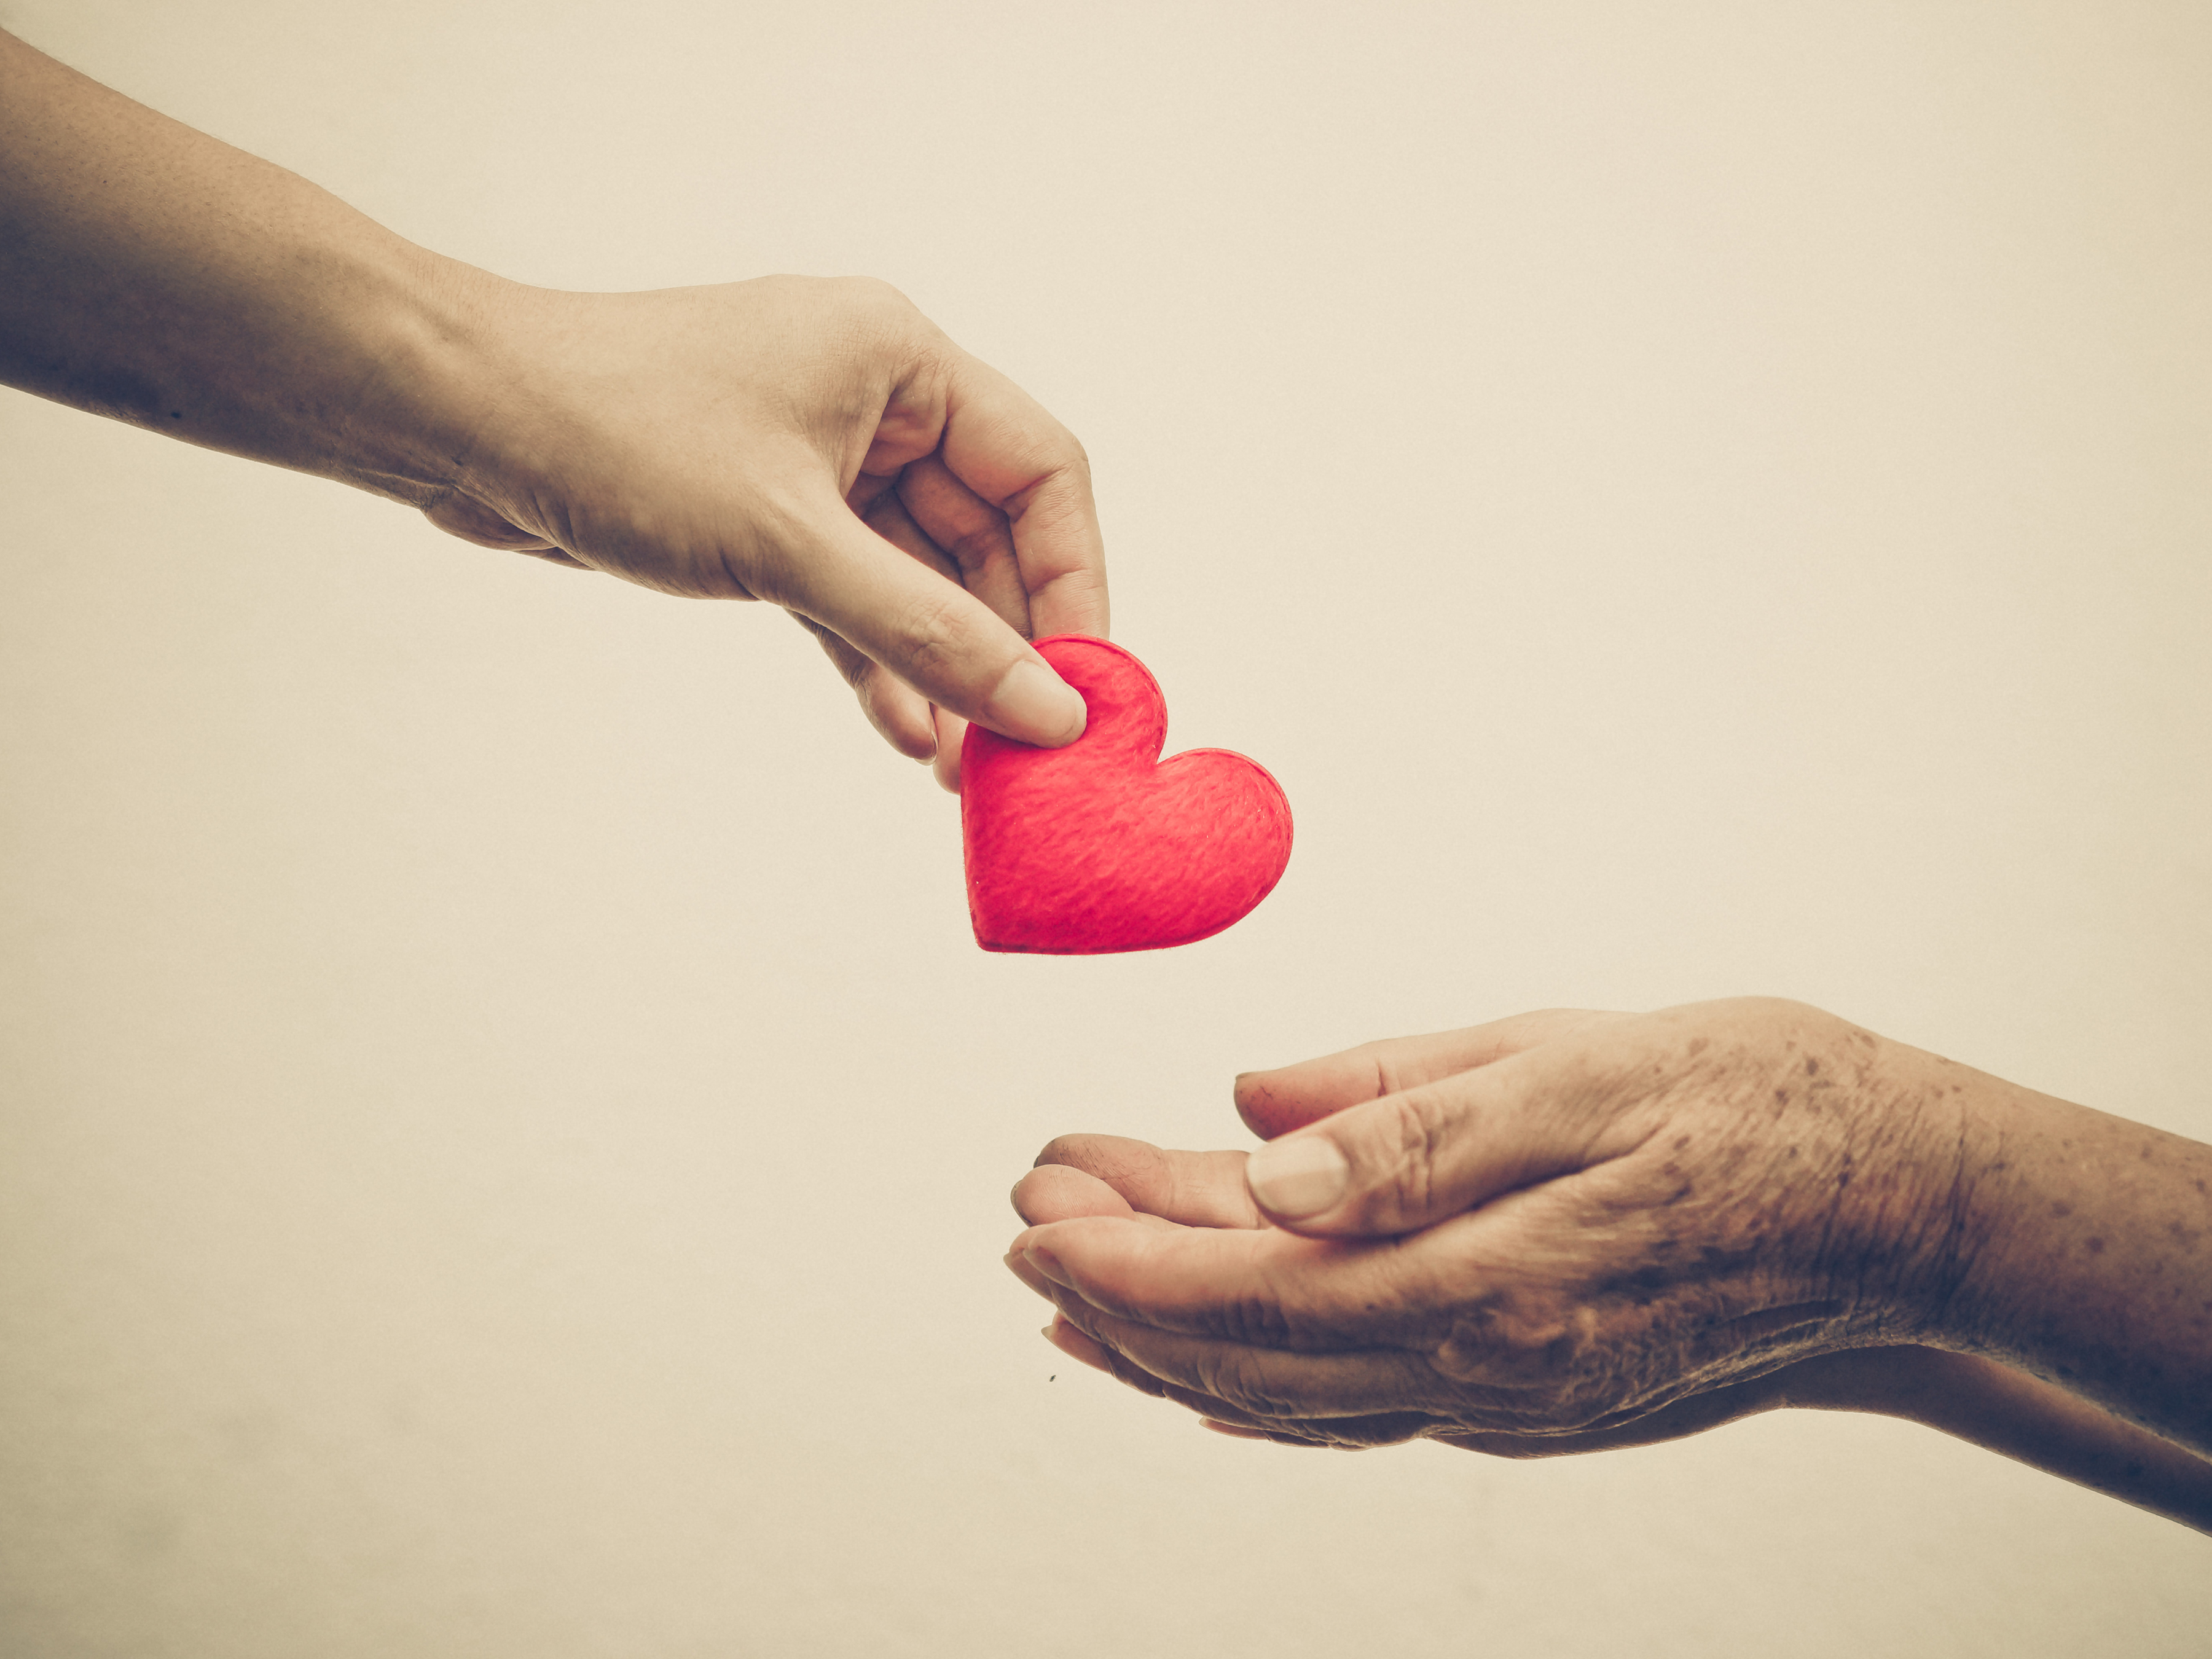 Attachment theory and adult relationships